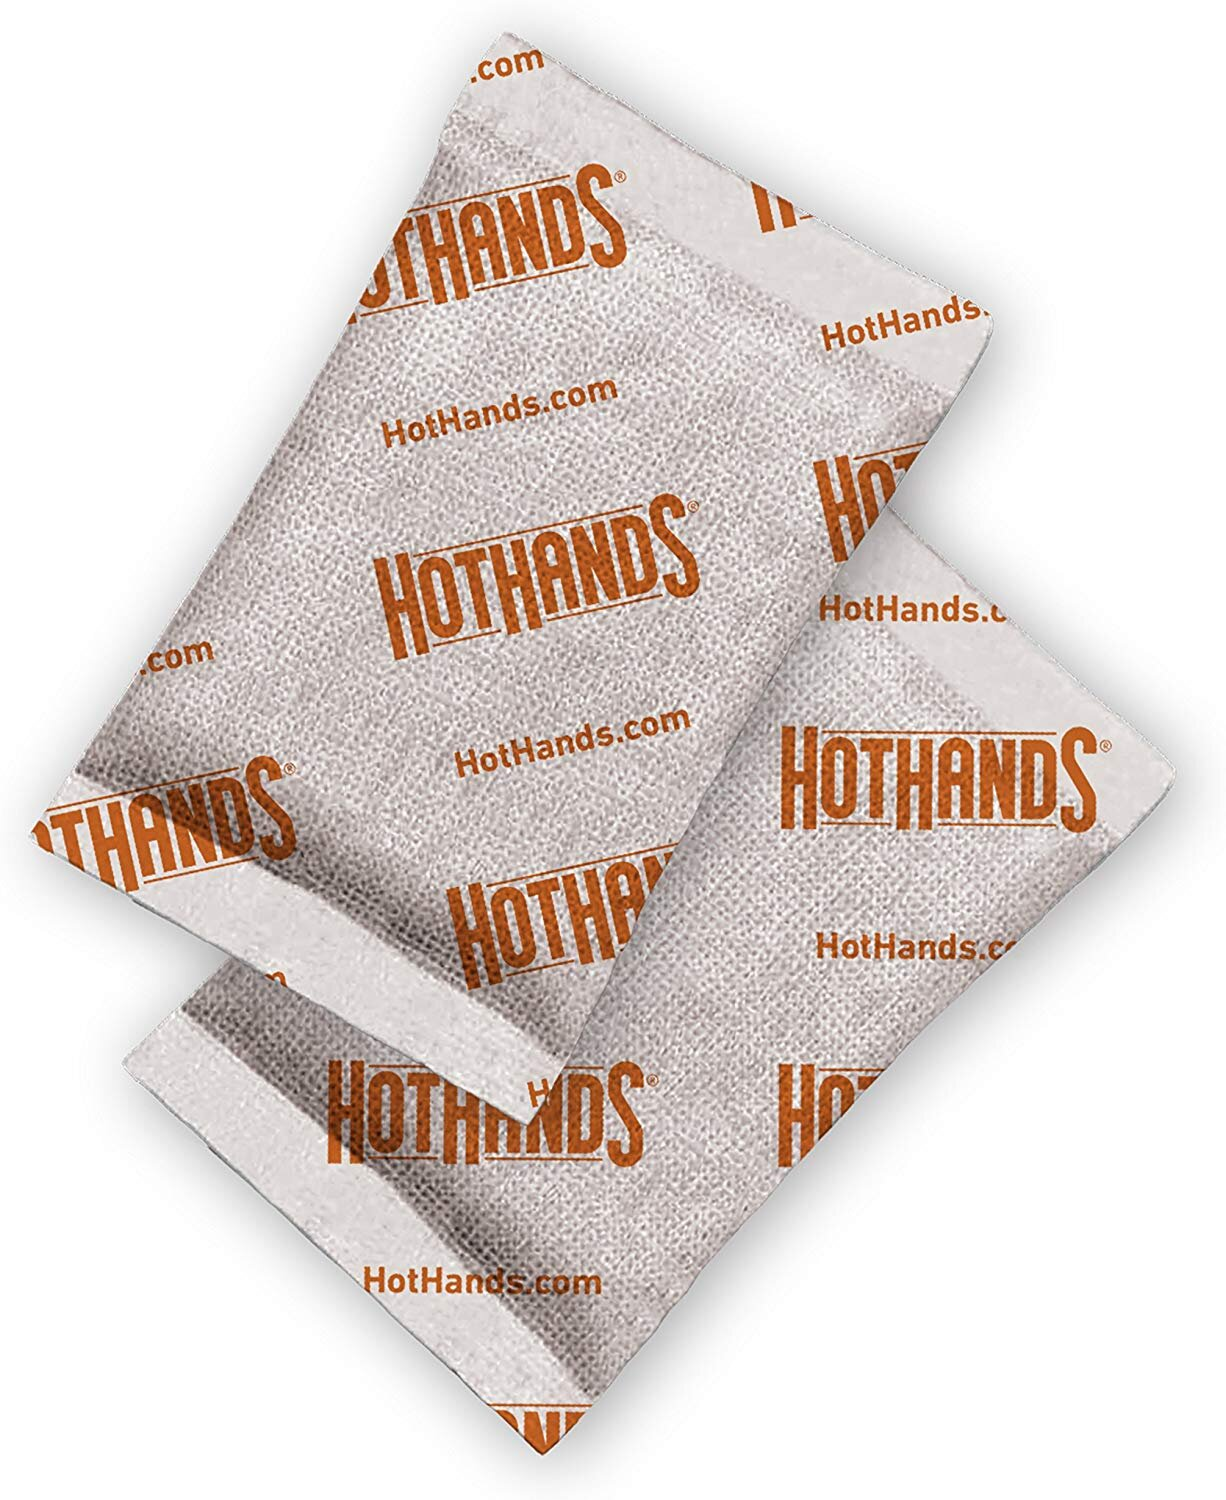 Recommended product: Hot Hands ($26 for 40 pairs)